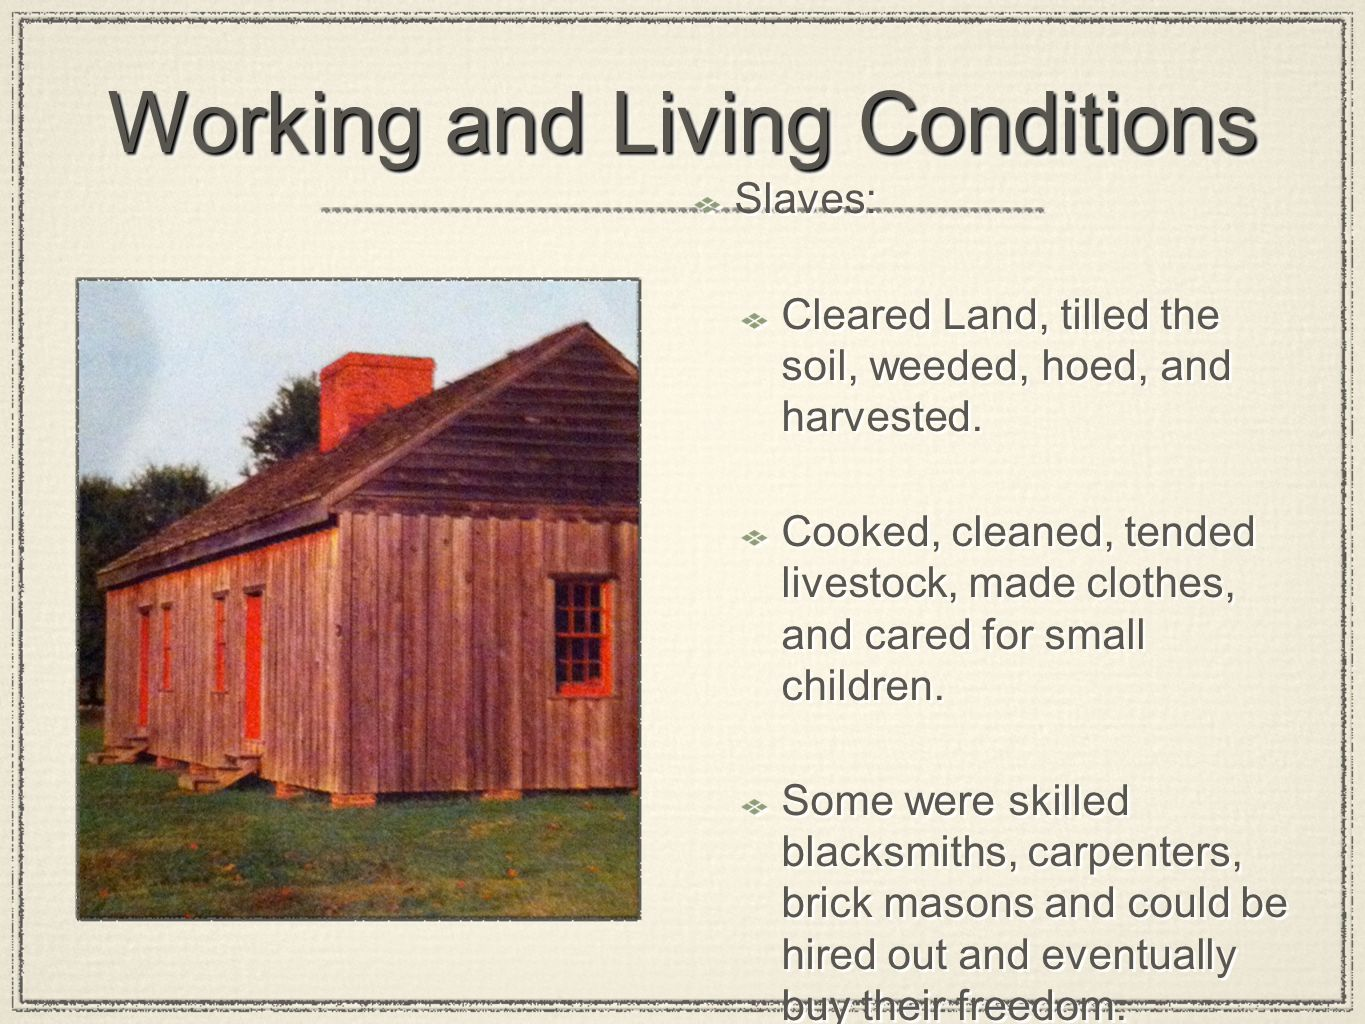 Working and Living Conditions Slaves: Cleared Land, tilled the soil, weeded, hoed, and harvested. Cooked, cleaned, tended livestock, made clothes, and